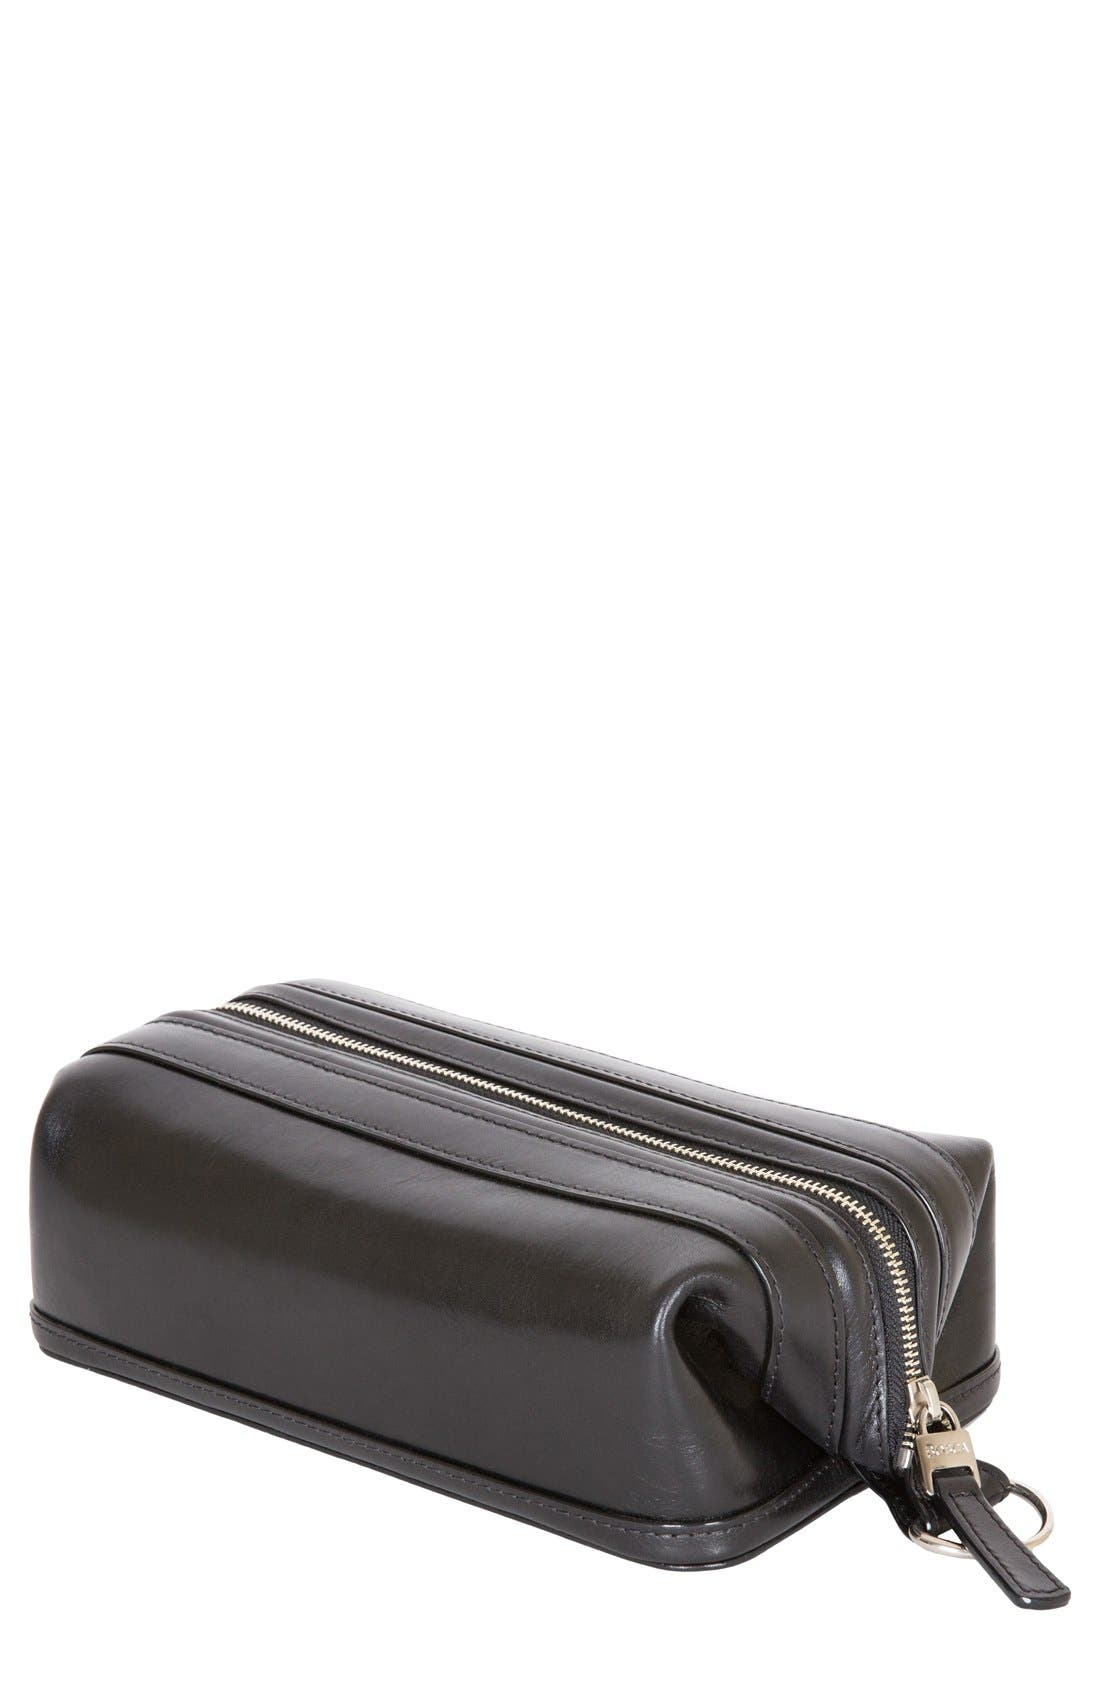 Leather Dopp Kit,                             Main thumbnail 1, color,                             BLACK